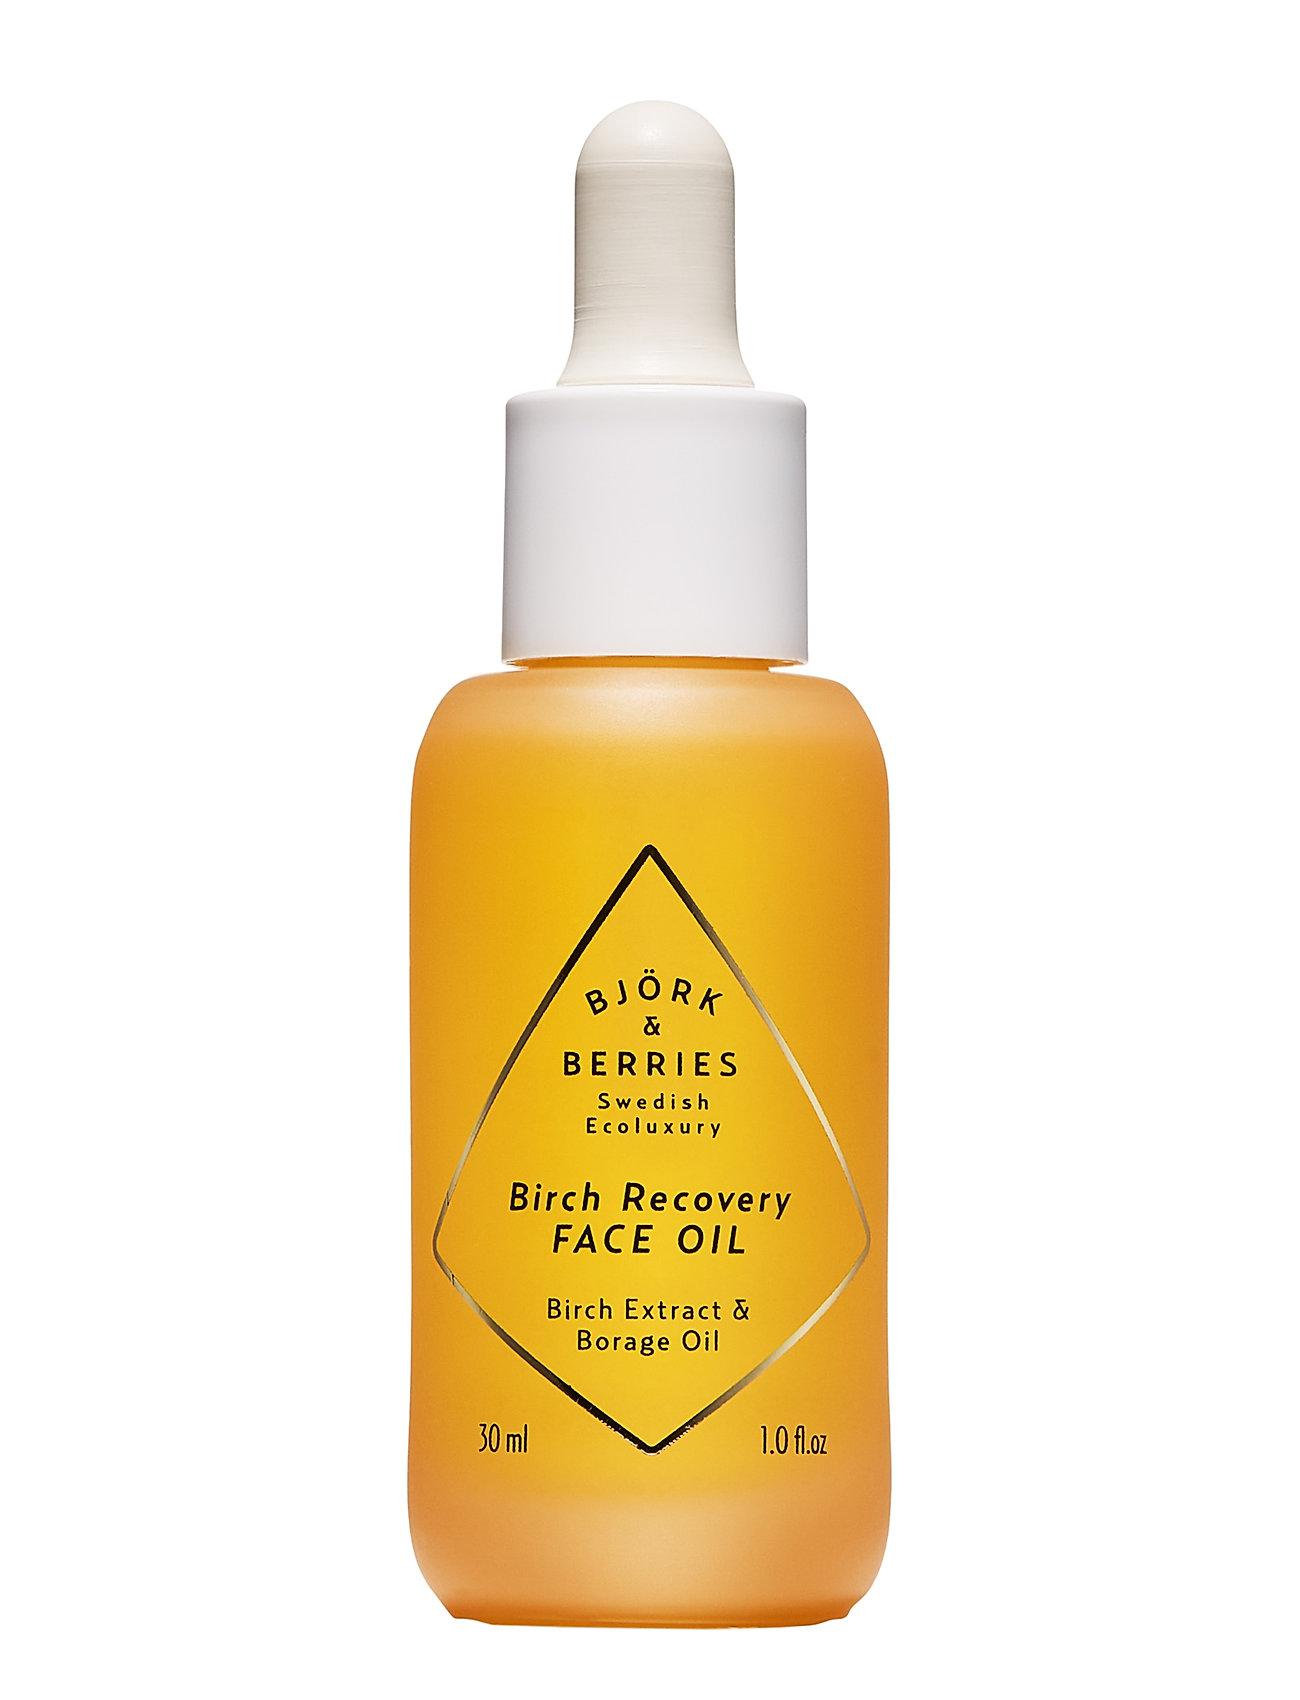 Björk & Berries Birch Recovery Face oil - CLEAR